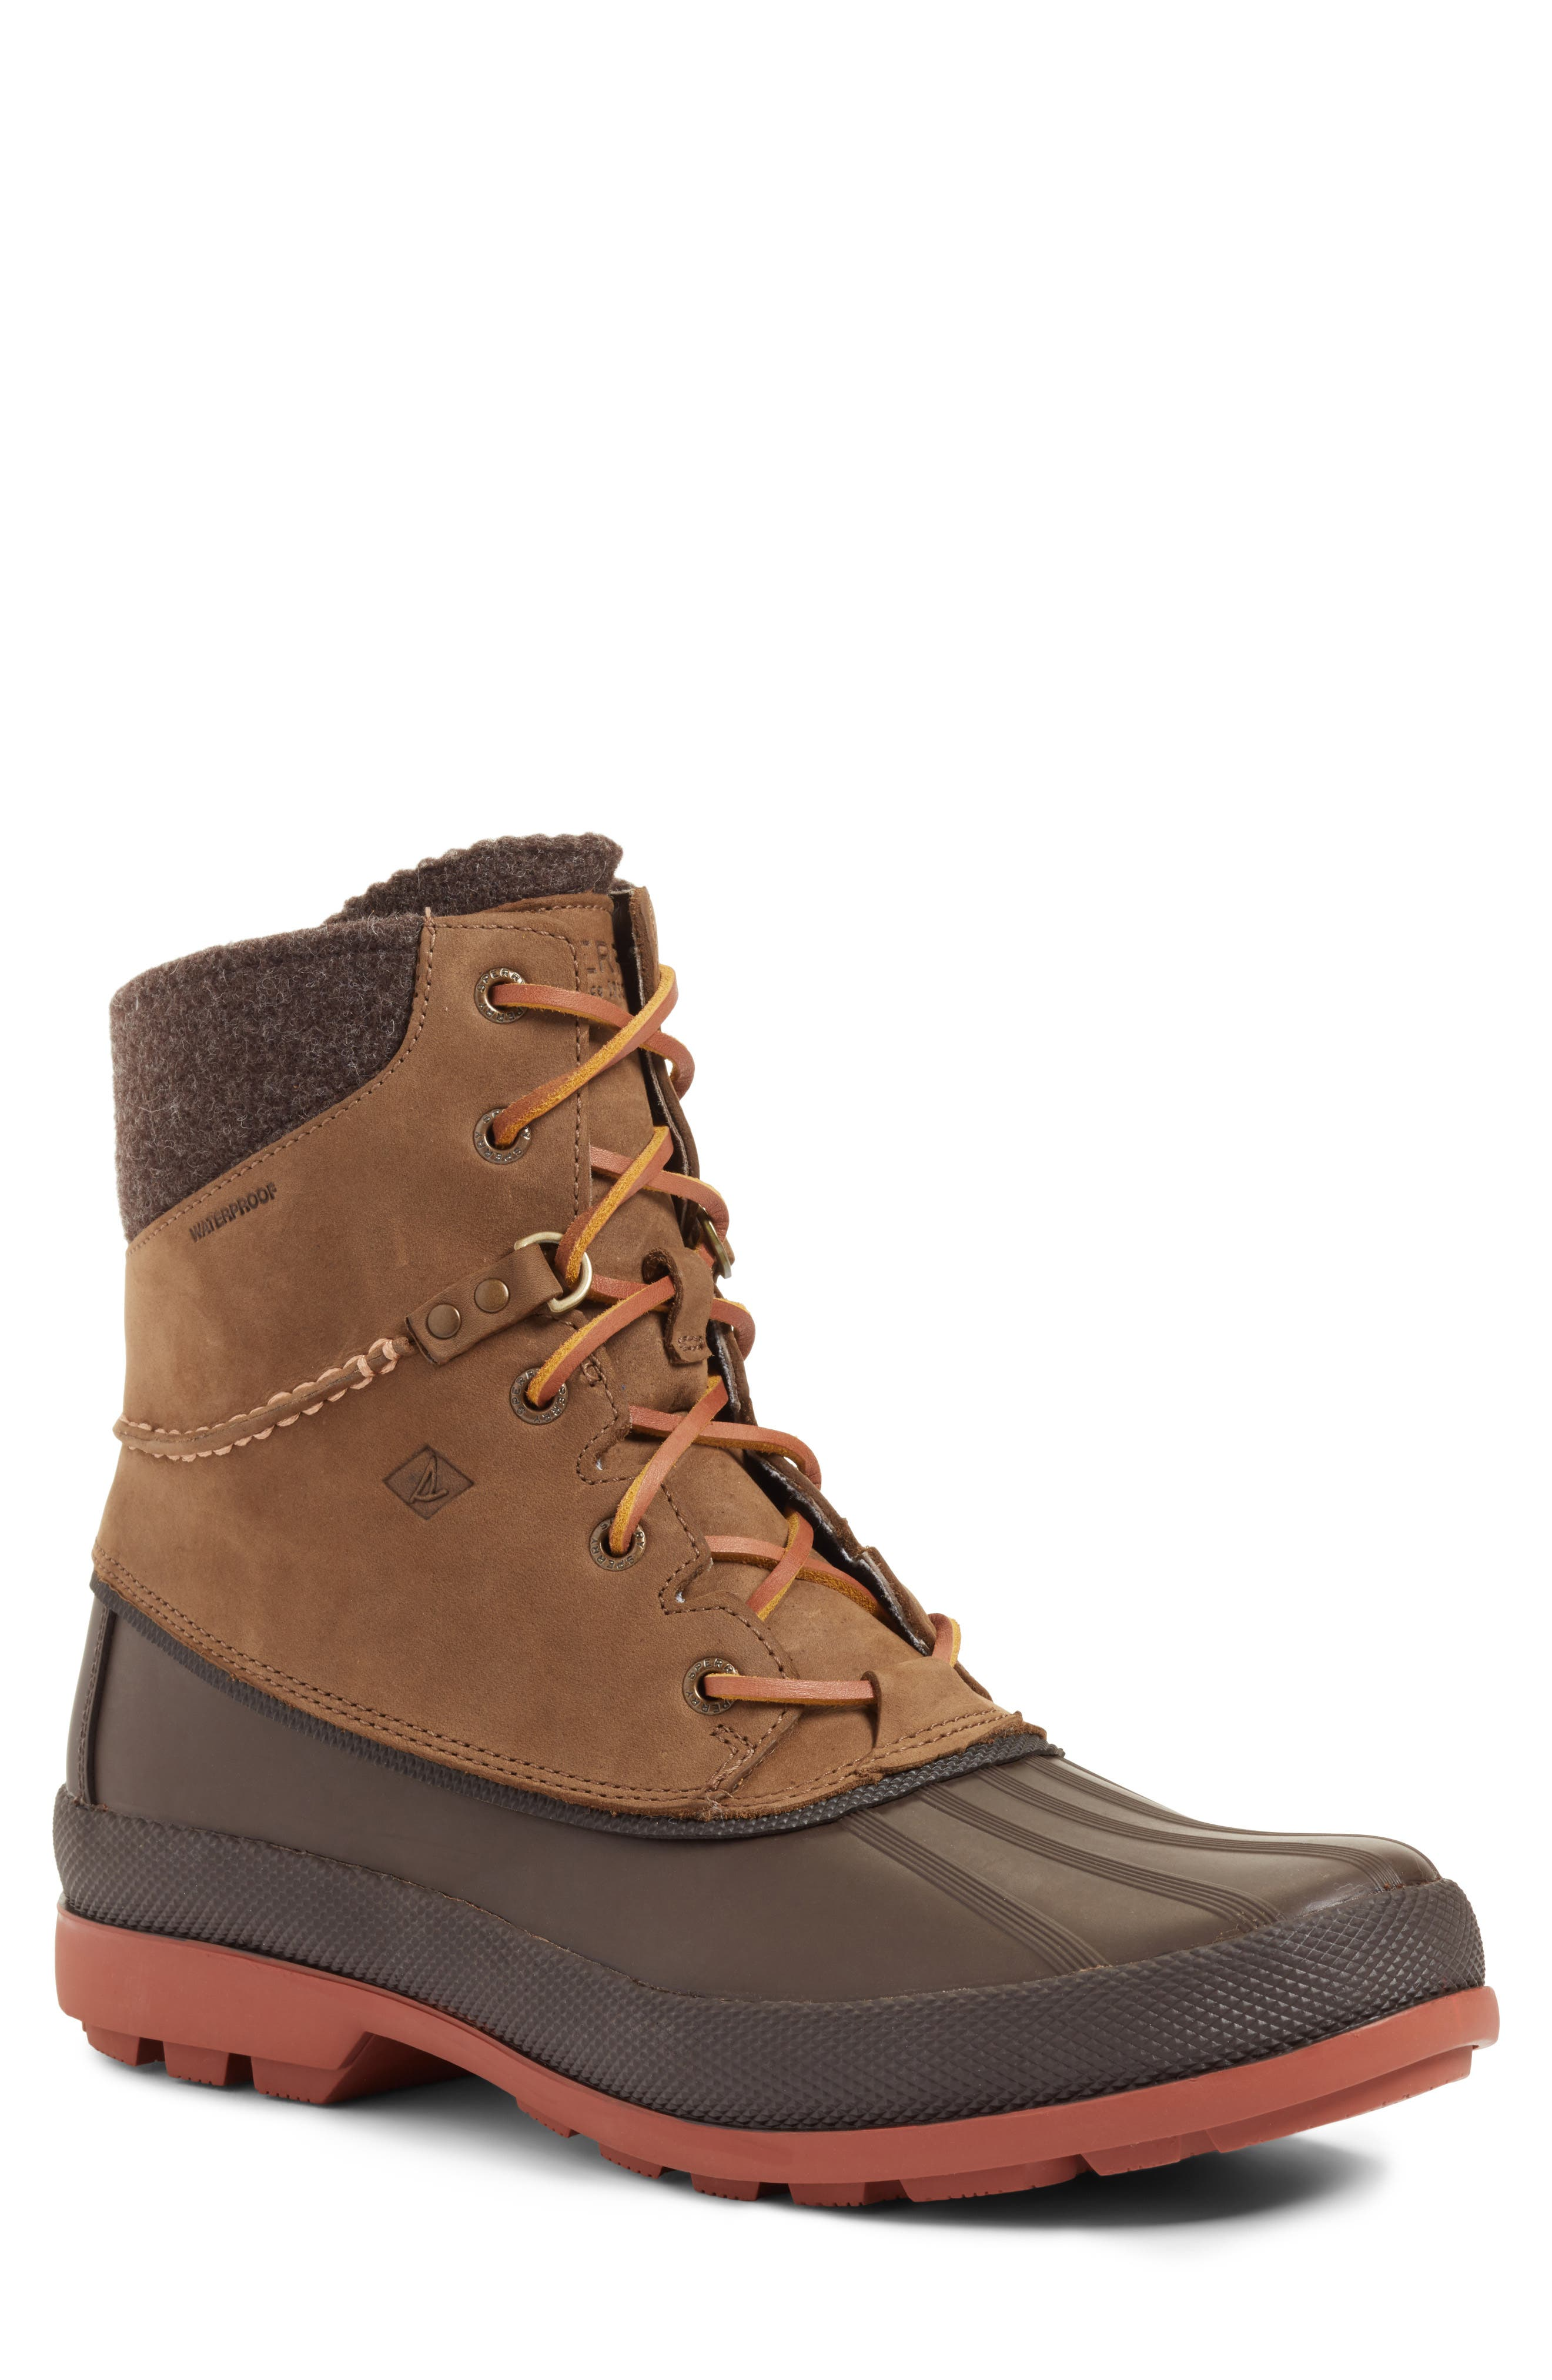 Main Image - Sperry Cold Bay Duck Boot (Men)